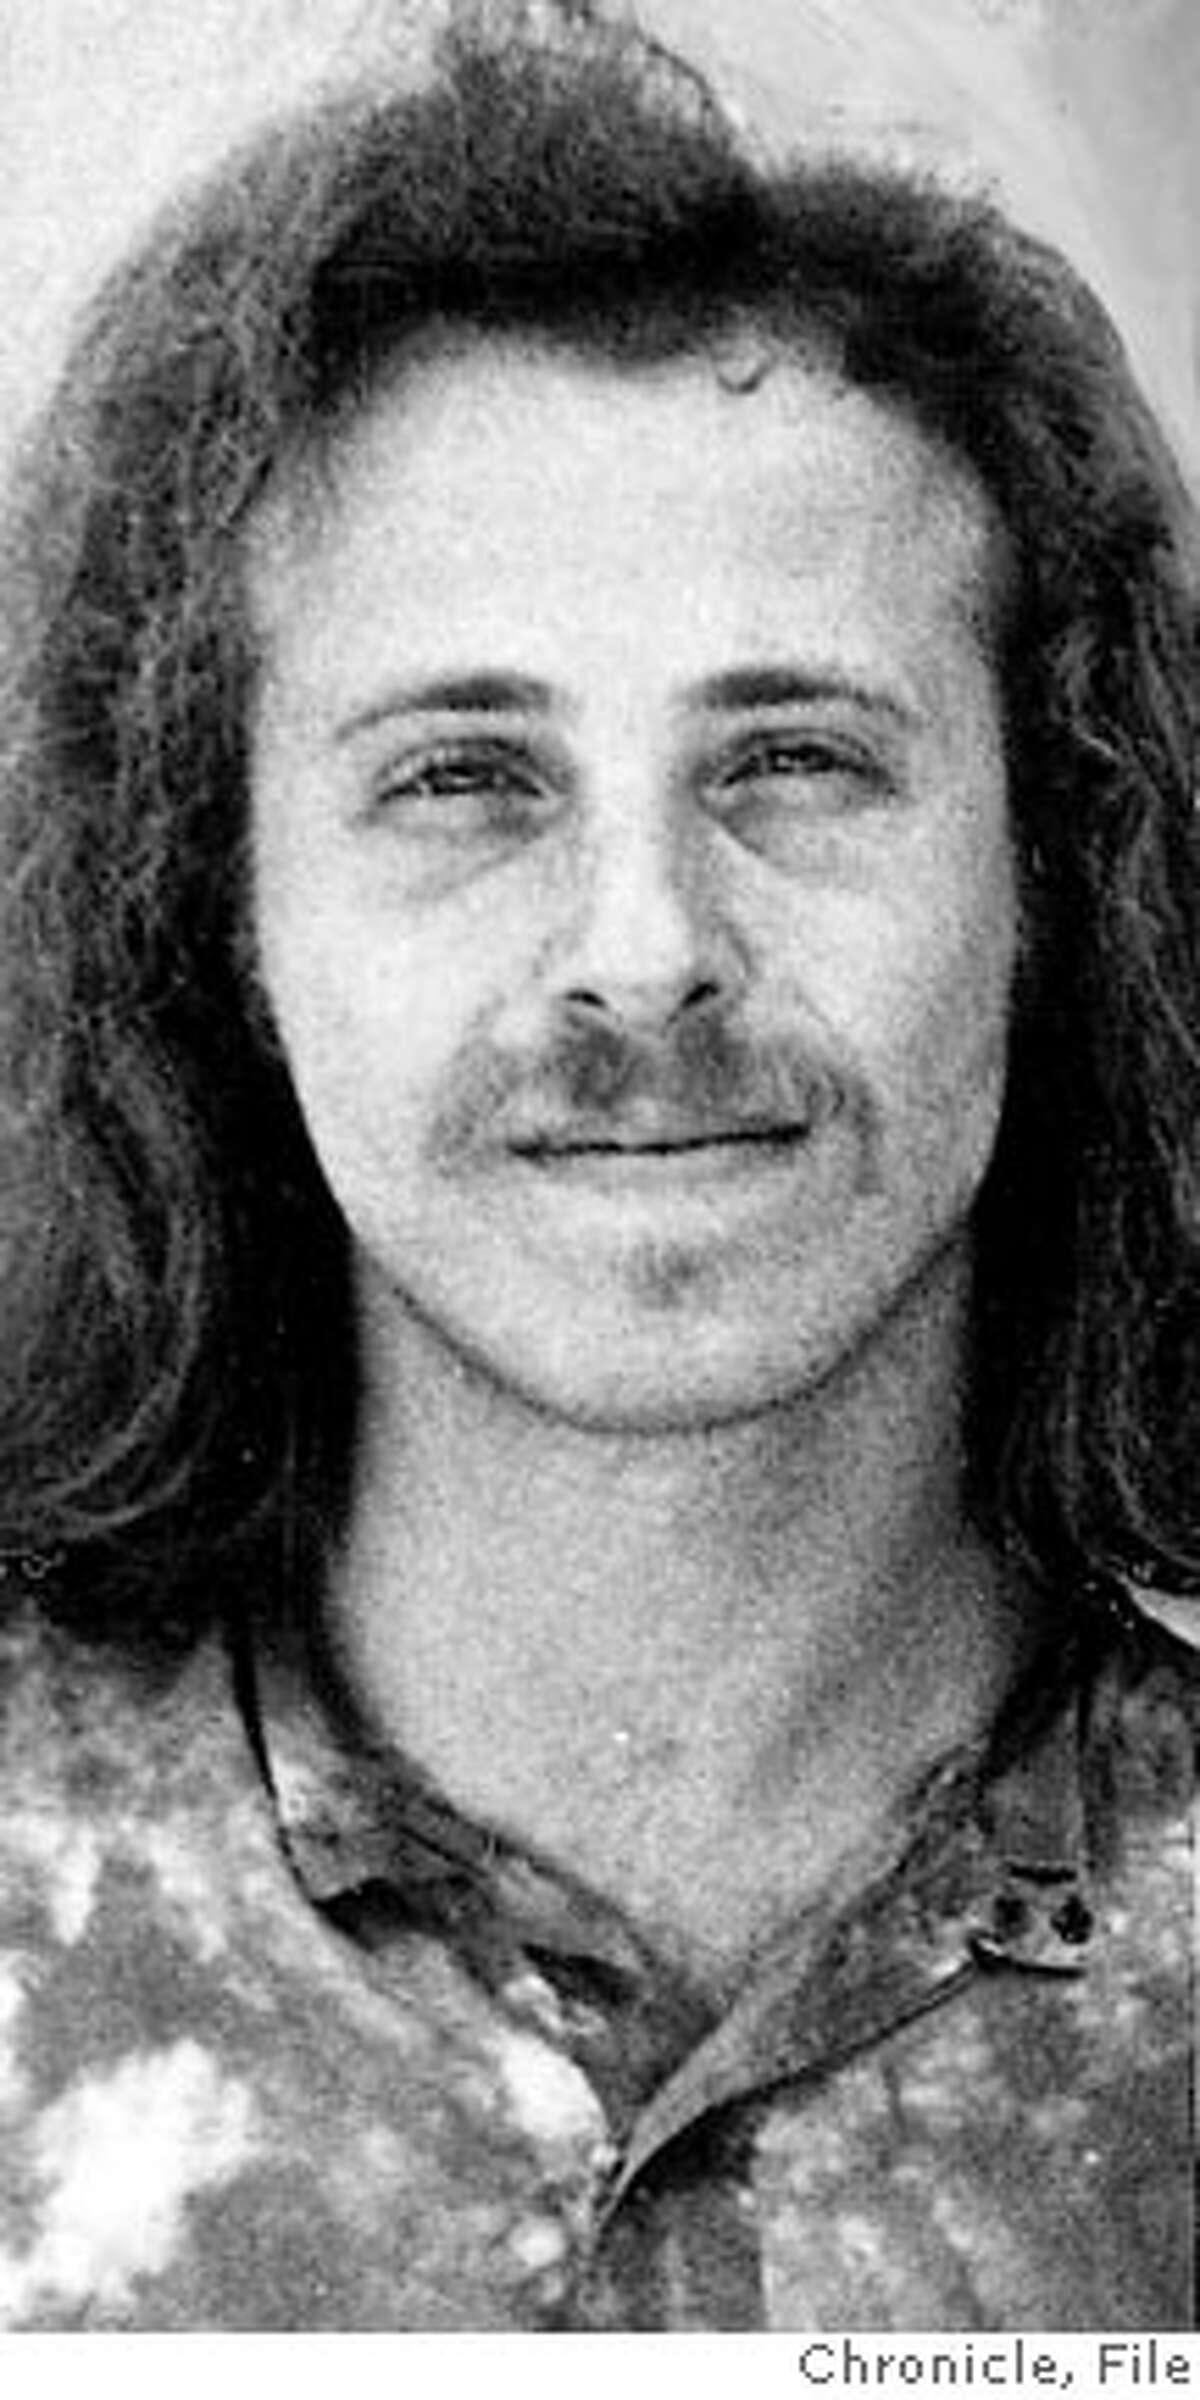 Date Unknown - David Getz, drummer for Big Brother & The Holding Co. Handout/ Chronicle File Photo